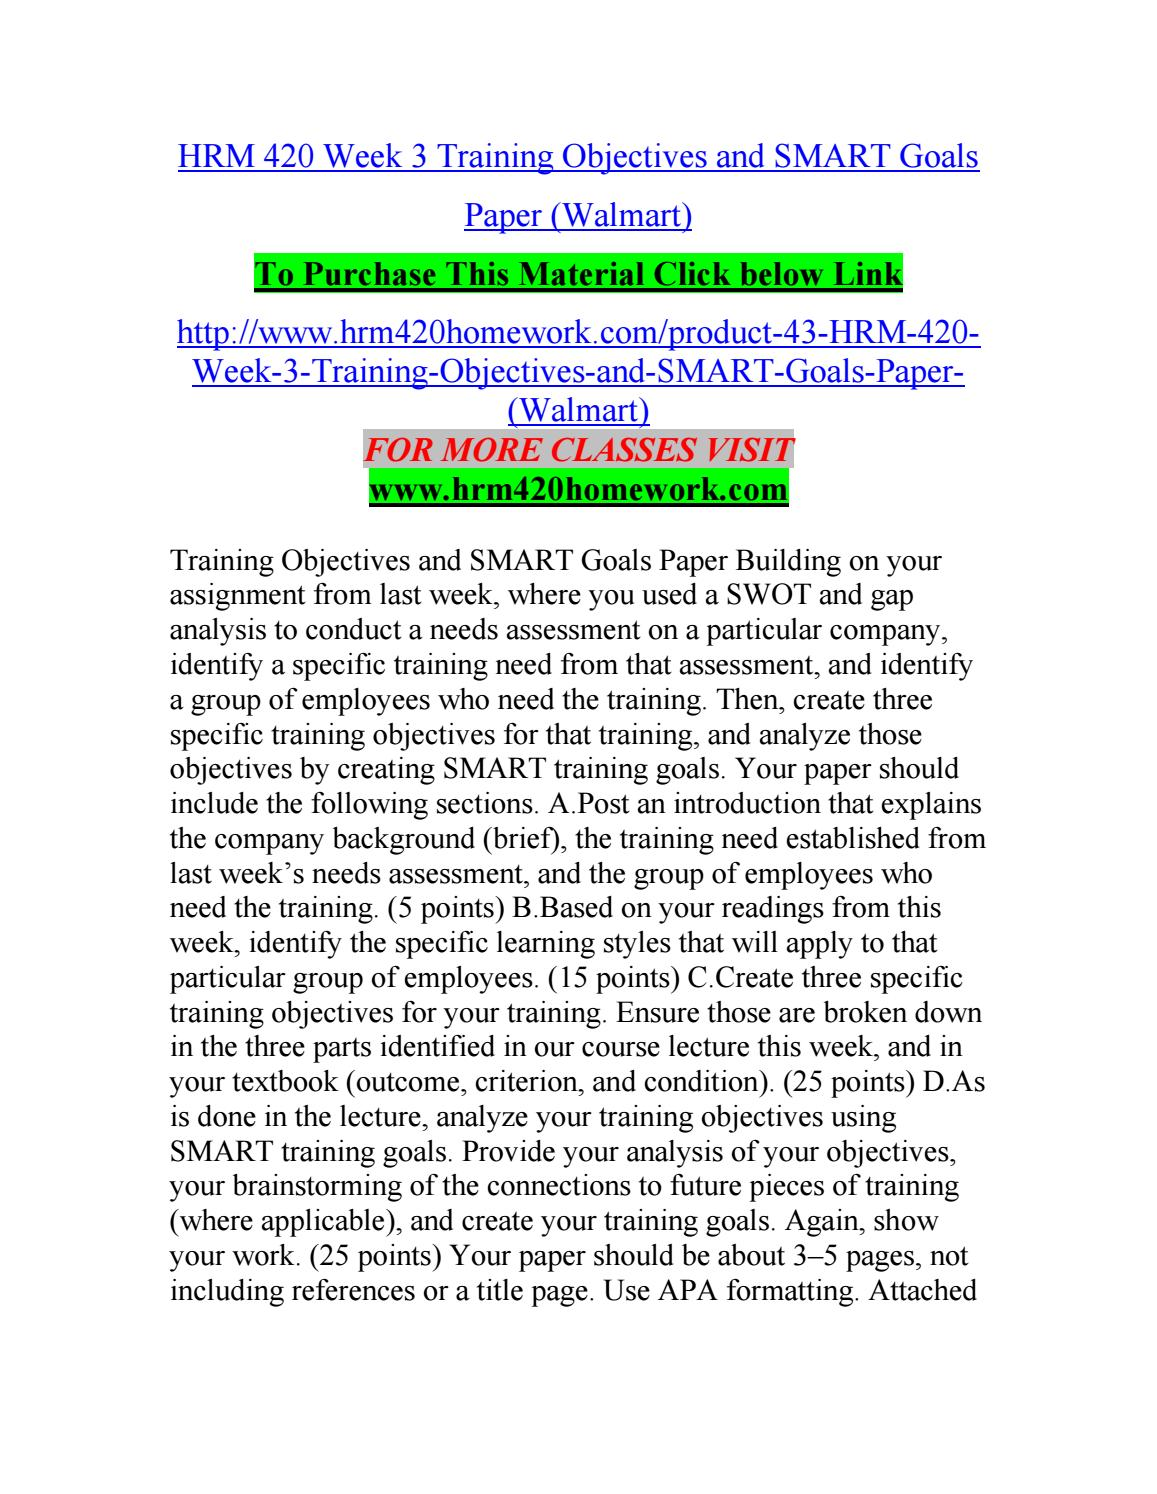 Hrm 420 week 3 training objectives and smart goals paper